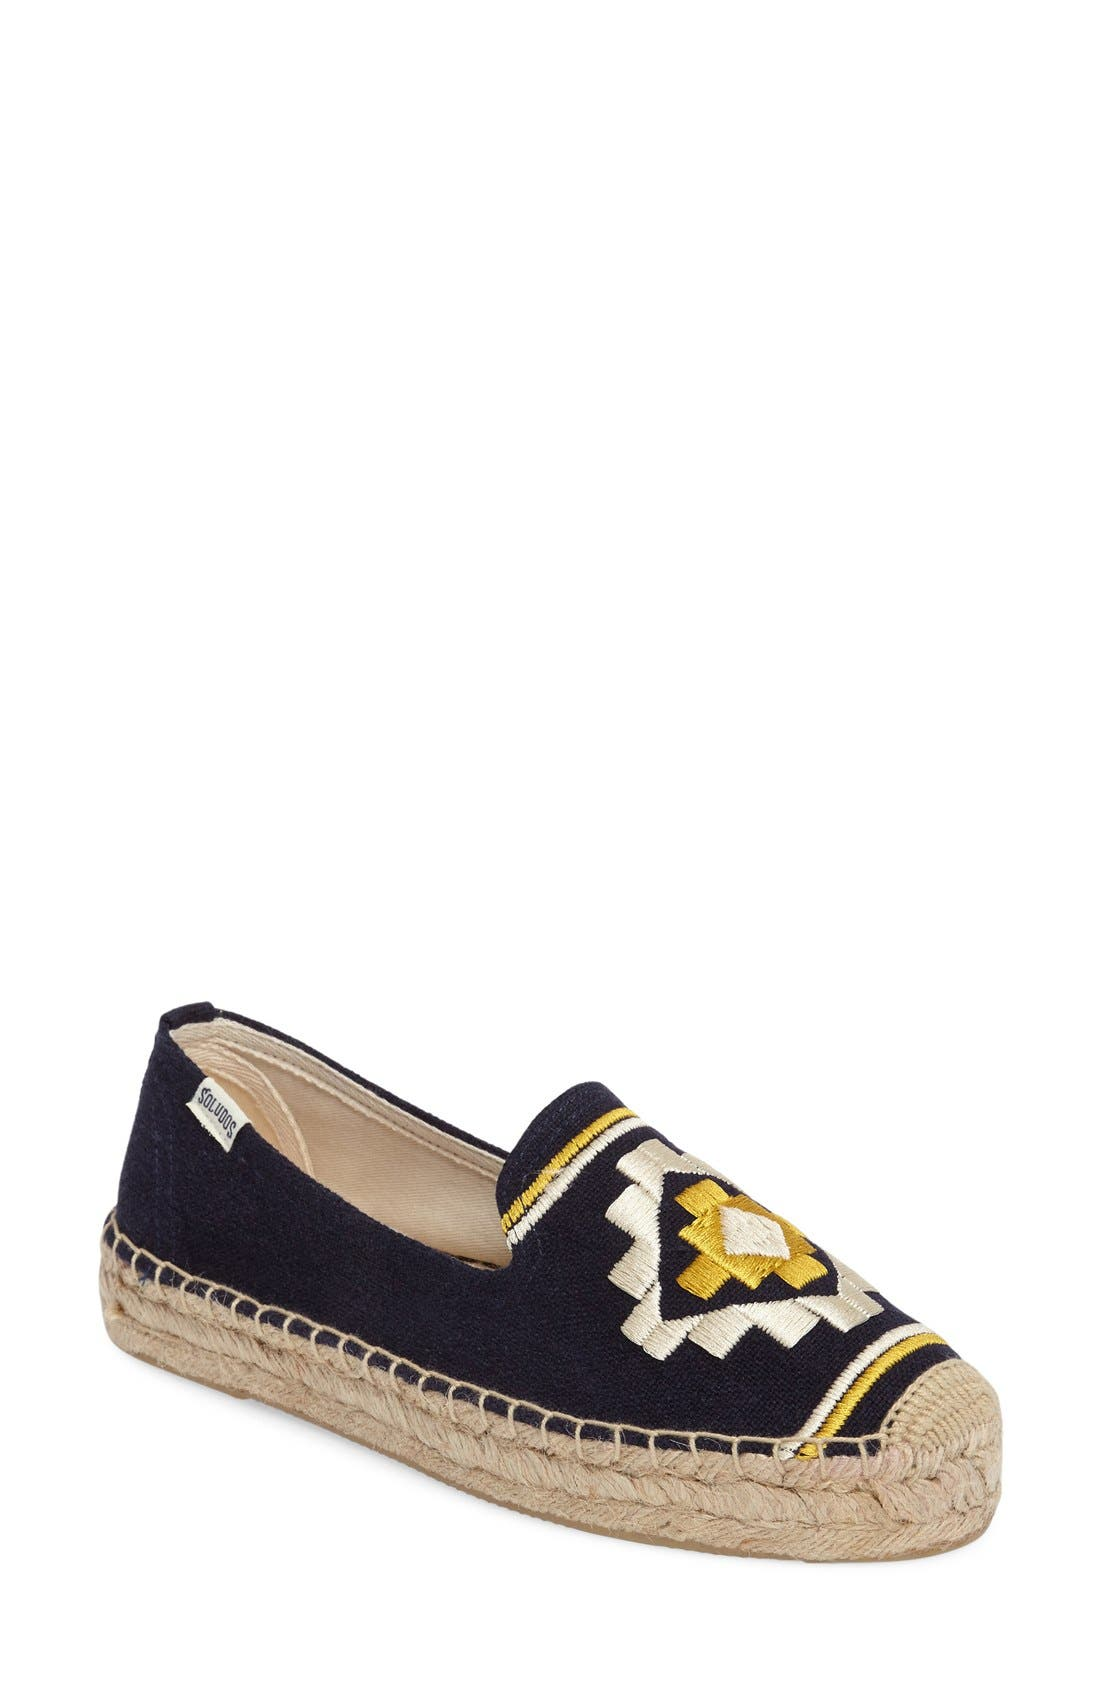 Soludos Embroidered Espadrille (Women)